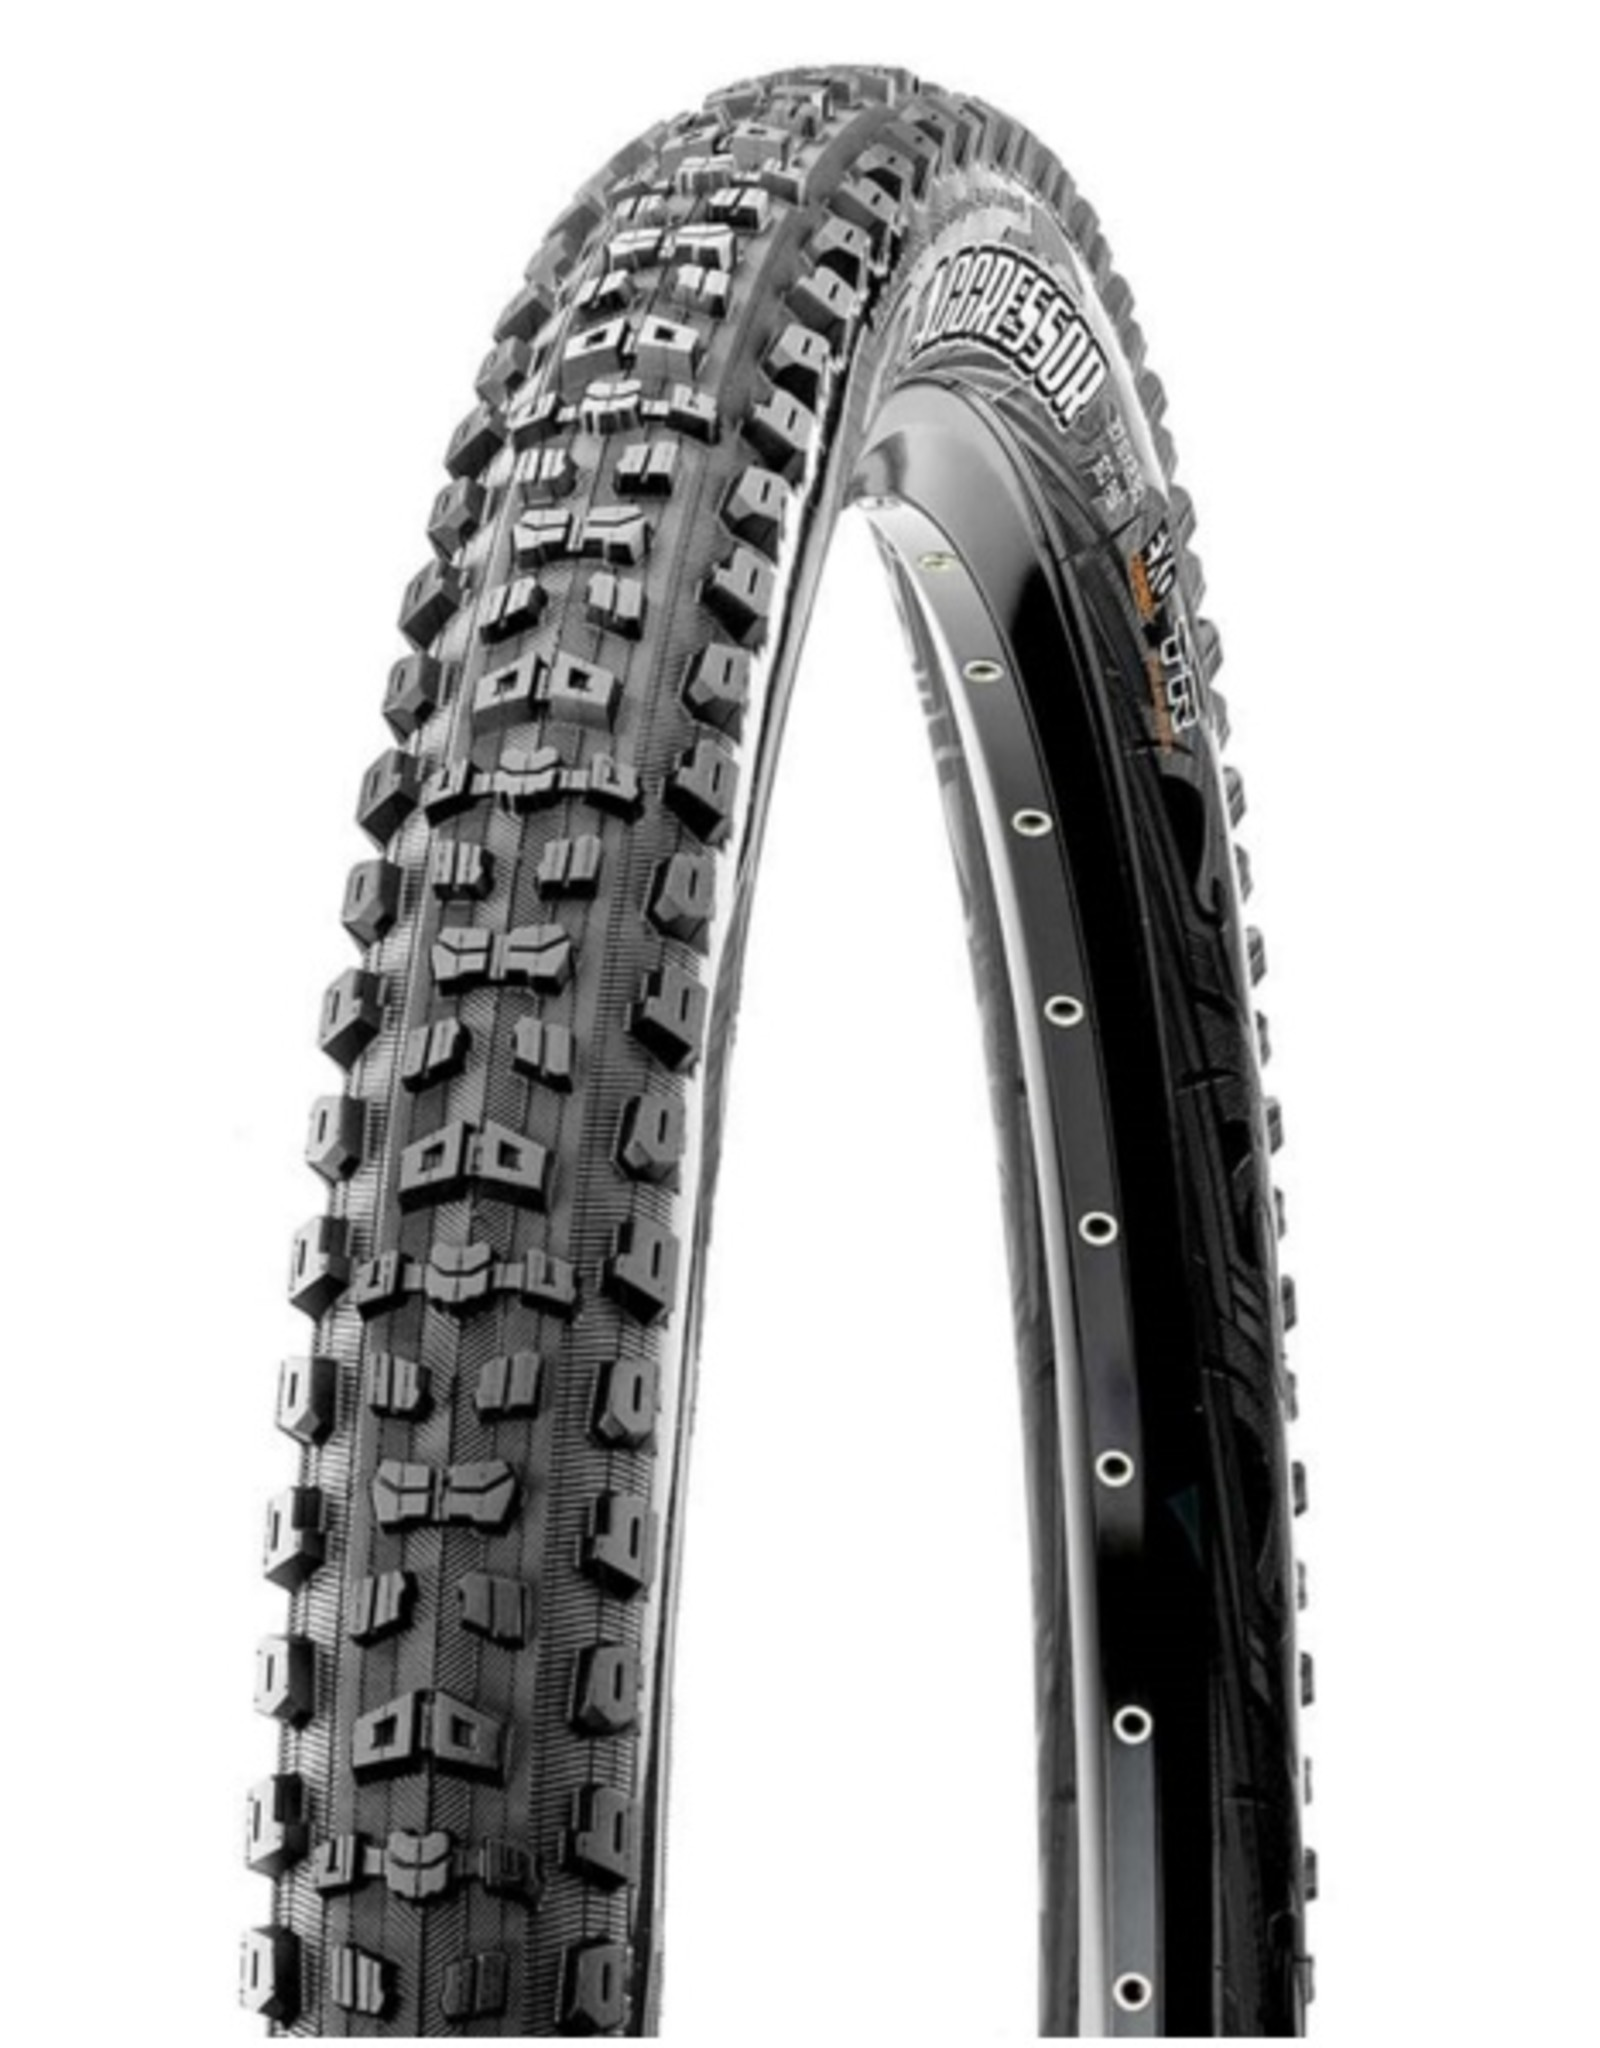 Maxxis Maxxis, Aggressor, 27.5x2.30, Folding, Dual, EXO, Tubeless Ready, 60TPI, 60PSI, 885g, Black